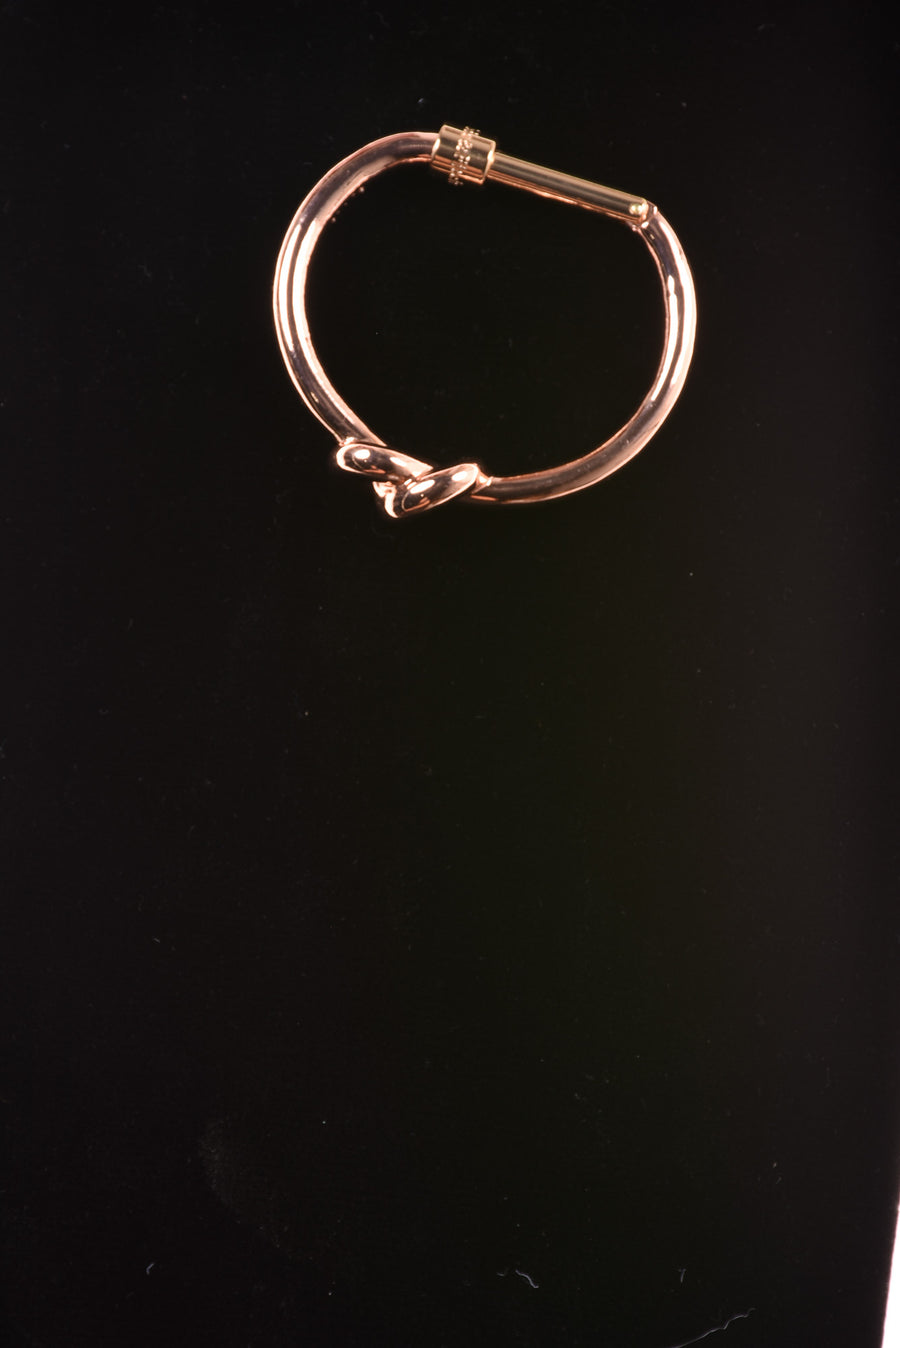 USED Abercrombie & Fitch Bracelet N/A Rose Gold Tone